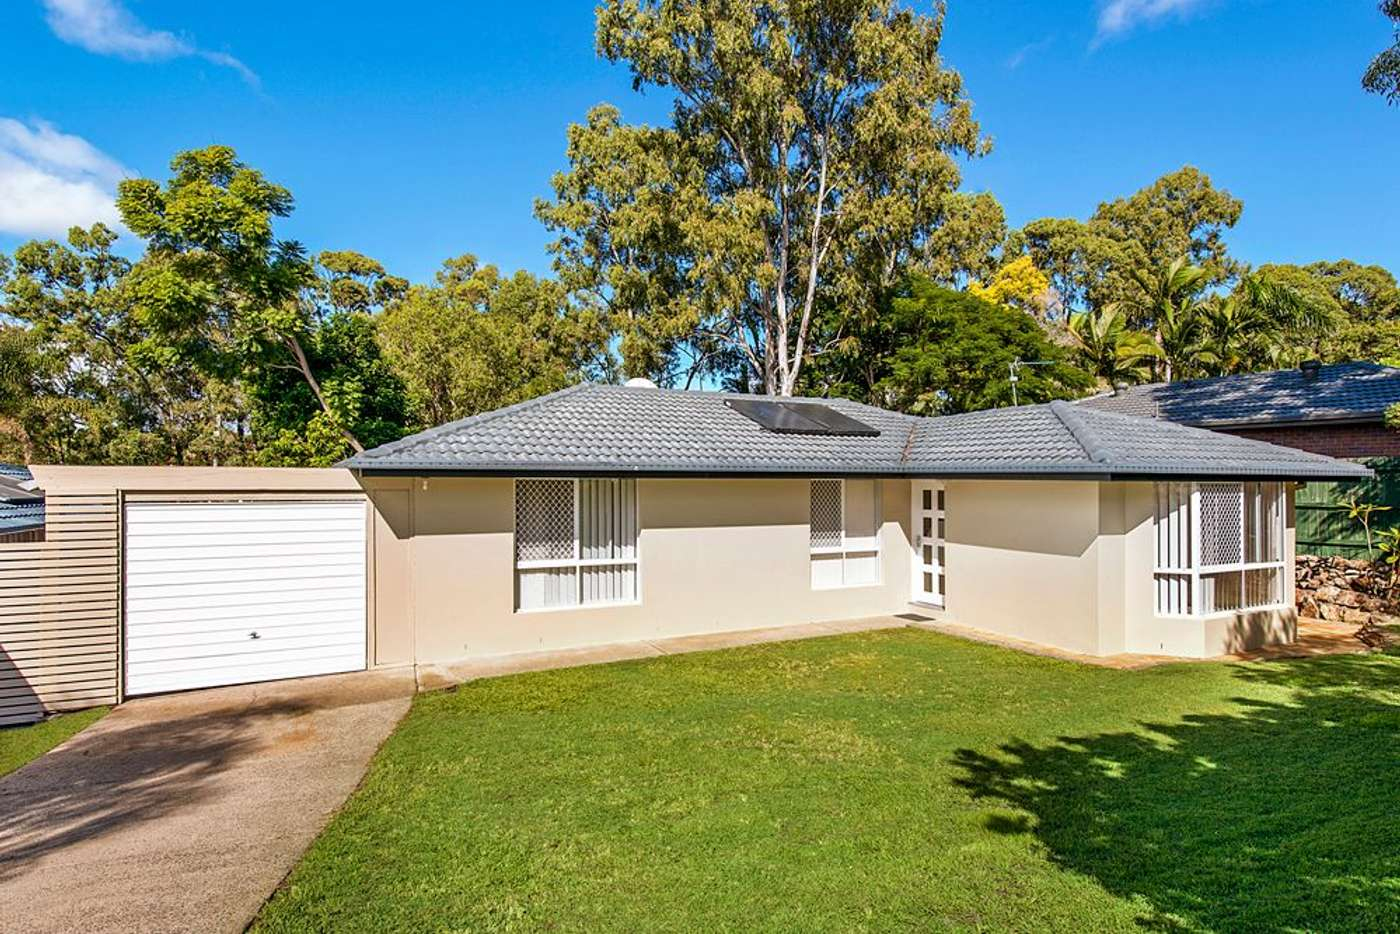 Main view of Homely house listing, 10 Cambridge Court, Carrara QLD 4211